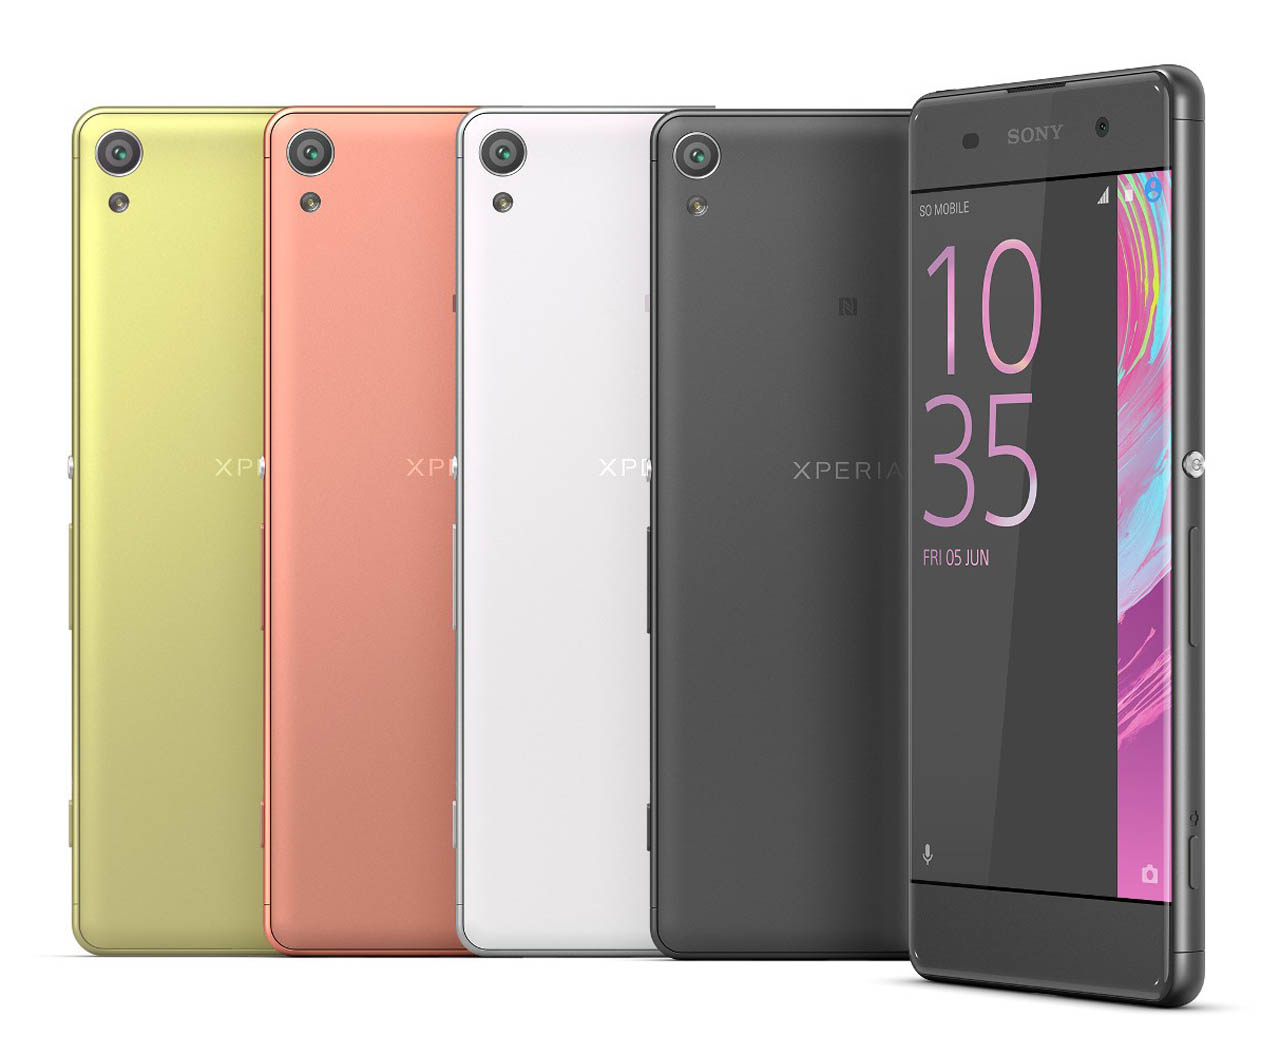 sony-xperia-x-series-unveiled-xperia-x-xperia-xa-and-xperia-performance-500755-9